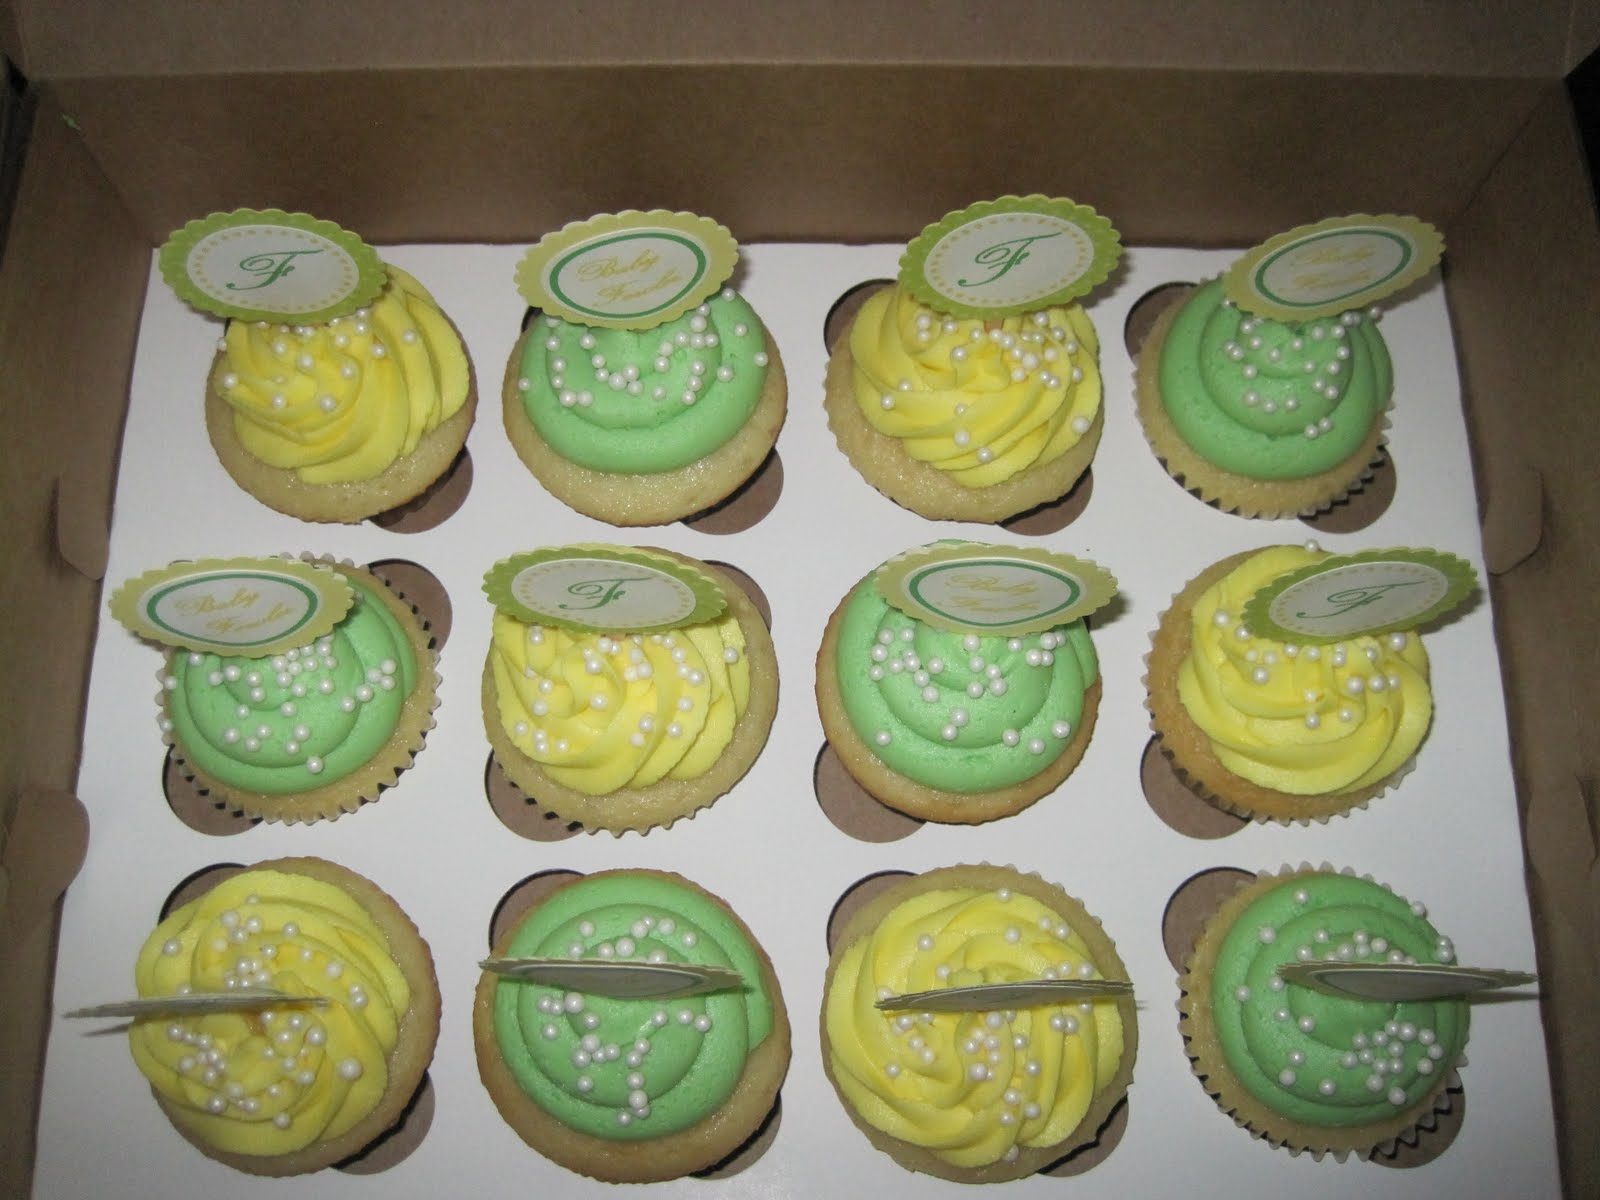 Baby Shower Cupcake Ideas Neutral : Silly Gilly Desserts: April 2011